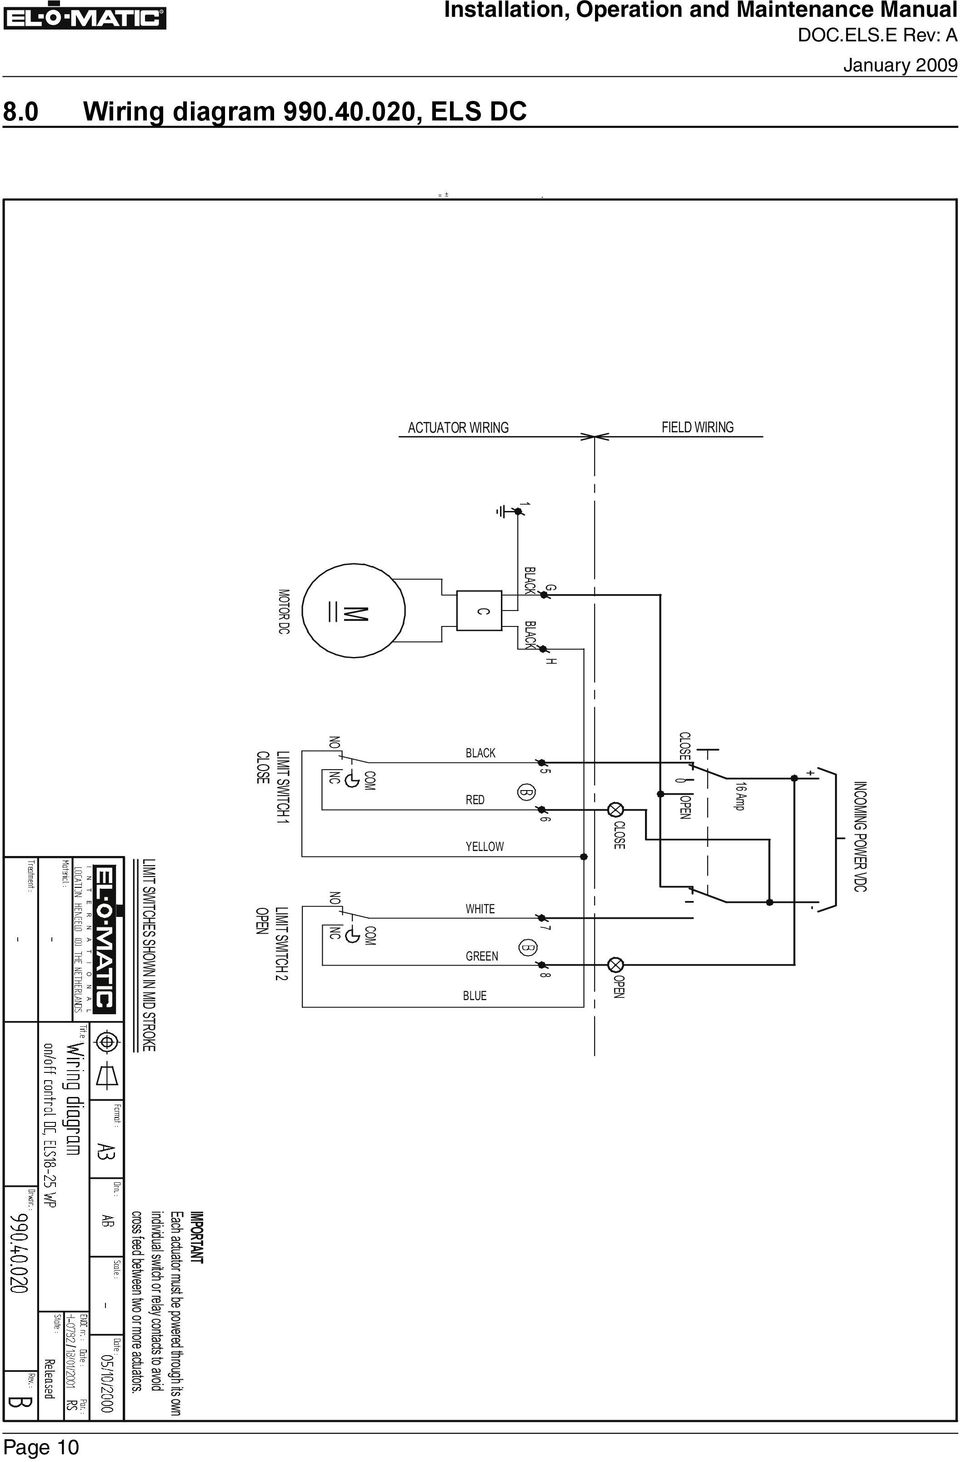 medium resolution of n a t i o n a l limit switches shown in mid stroke limit switch 1 close limit switch 2 open no 11 9 0 wiring diagram